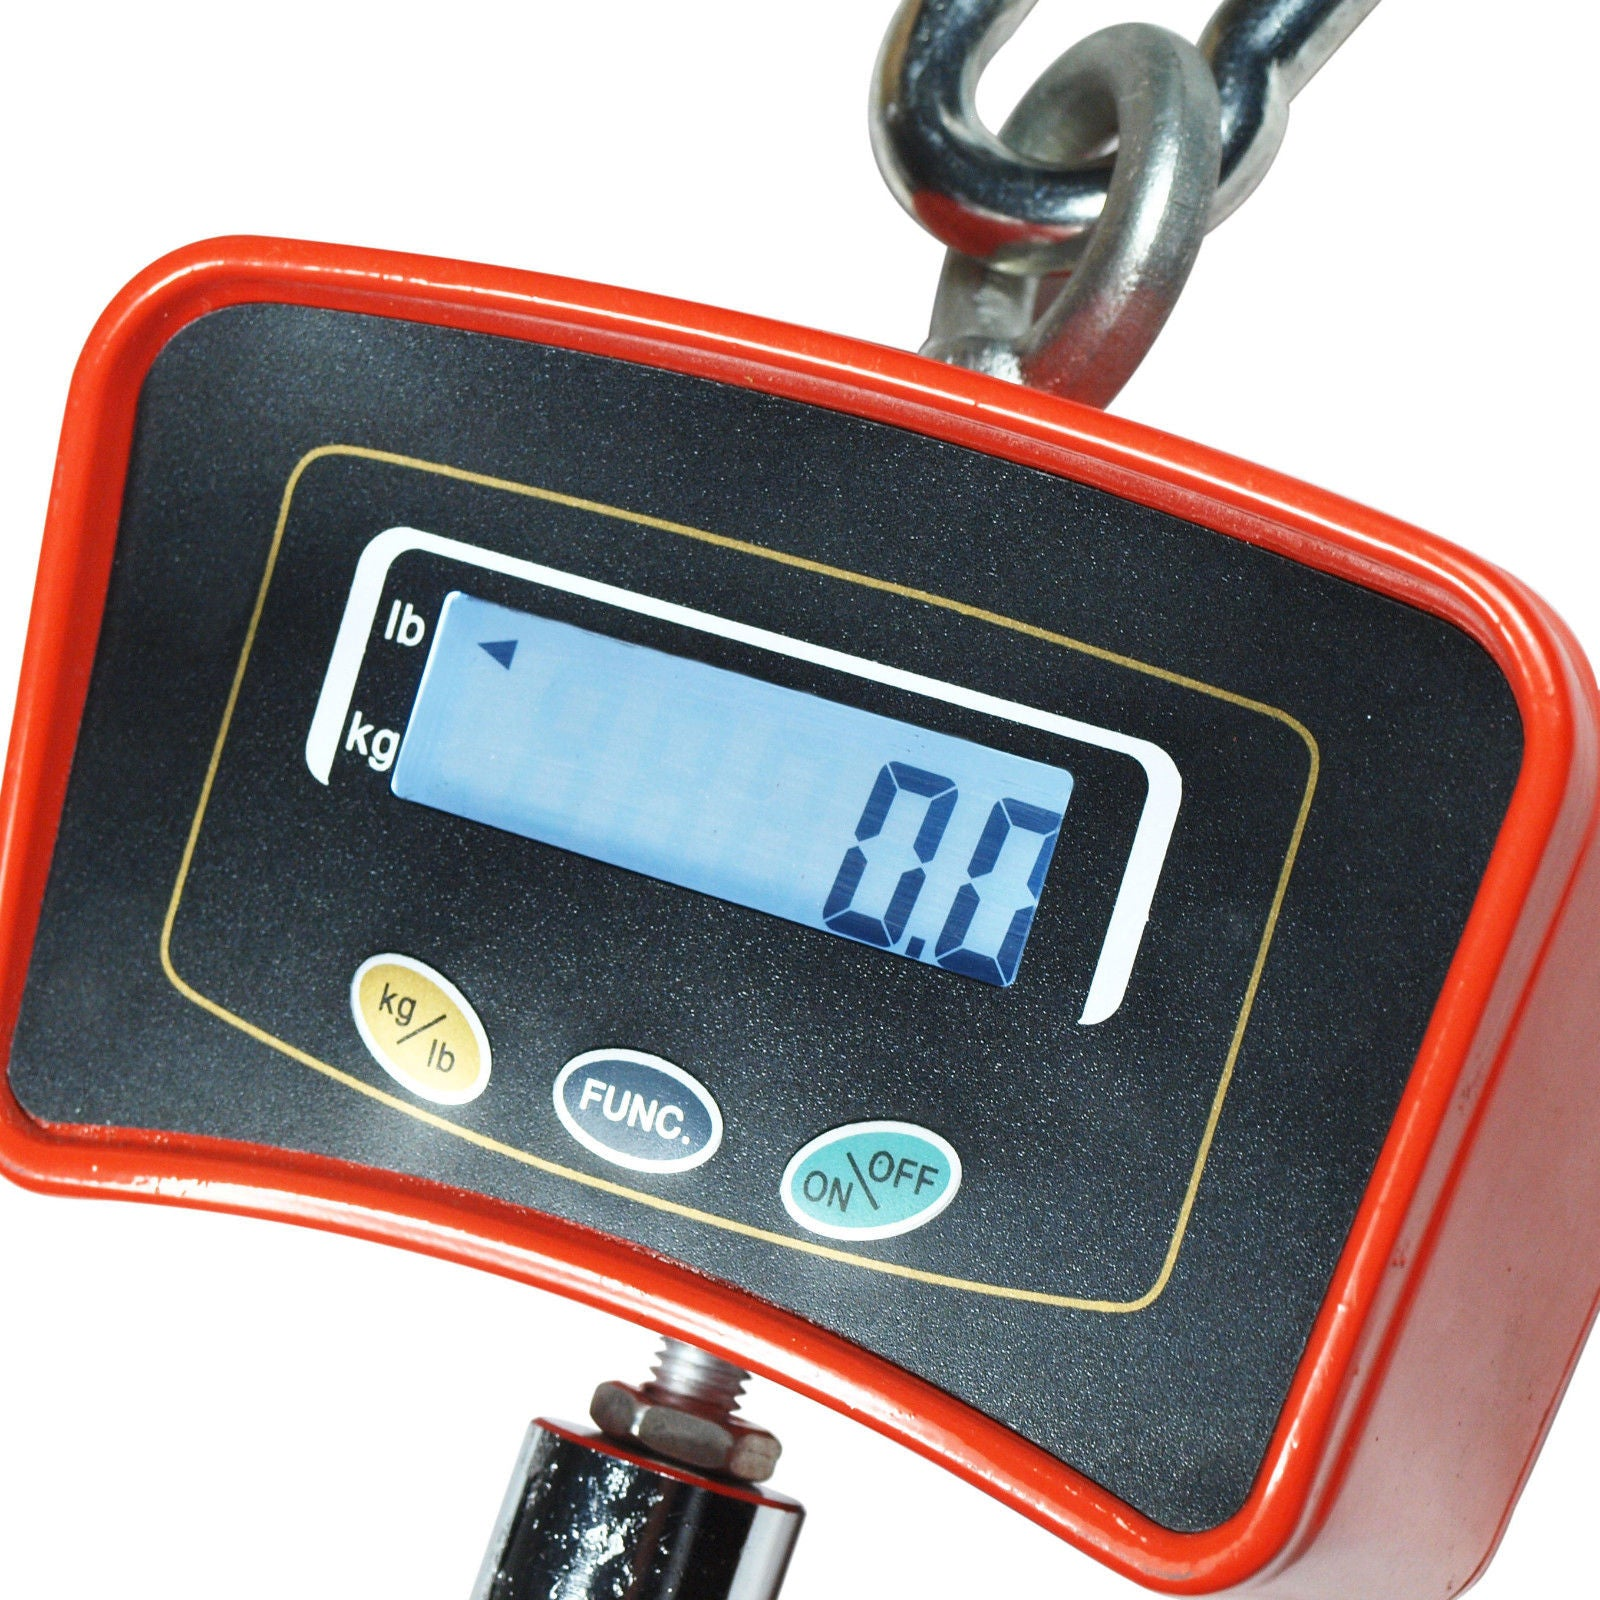 3d76535989fb 500 KG / 1100 LBS Digital Crane Scale Heavy Duty Industrial Hanging ...